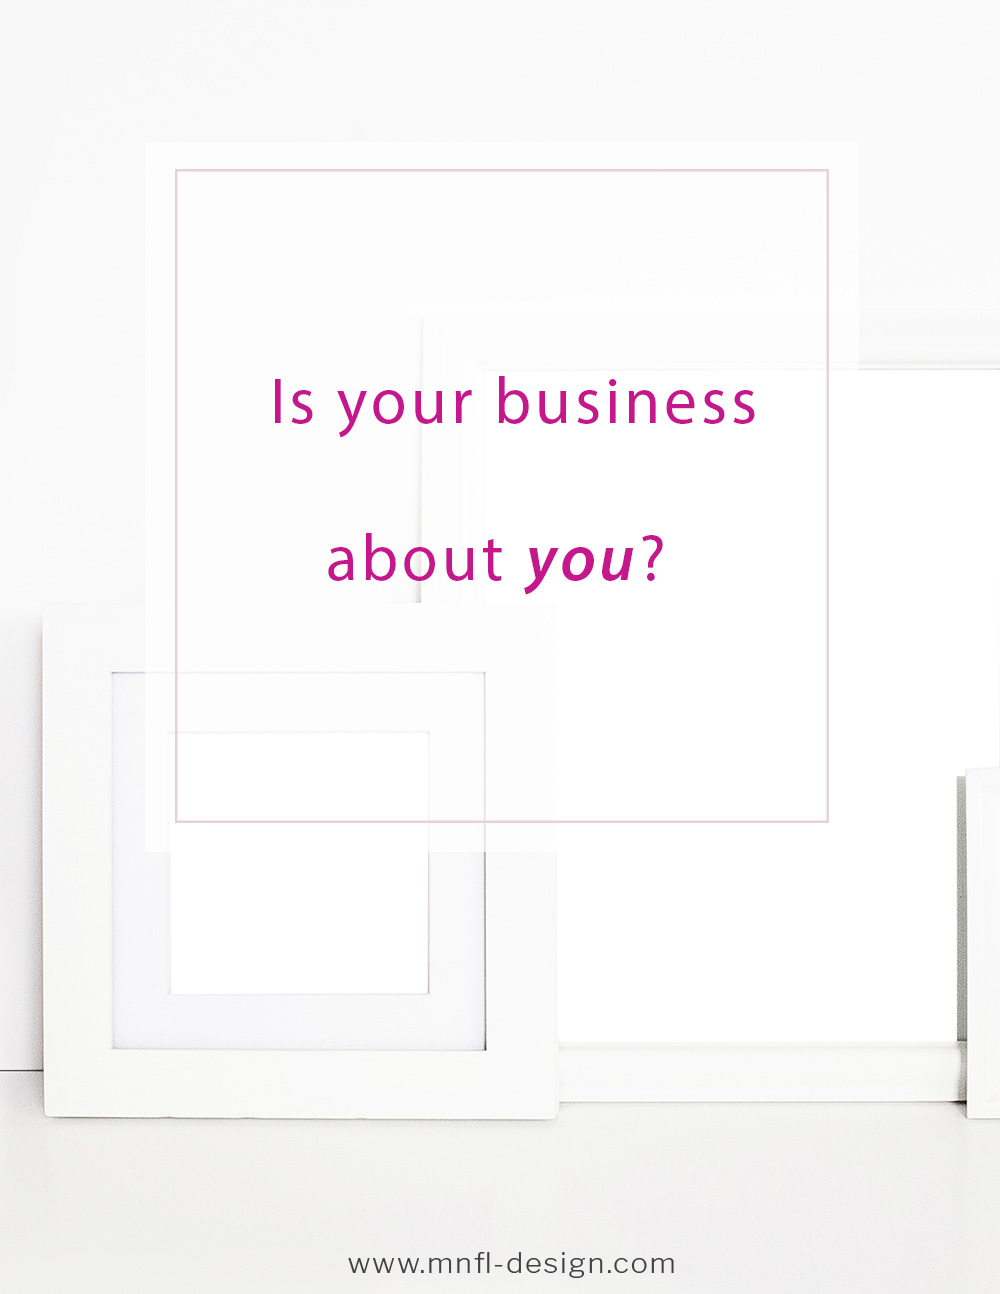 Personal branding - Is your business about you? | MNFL Design